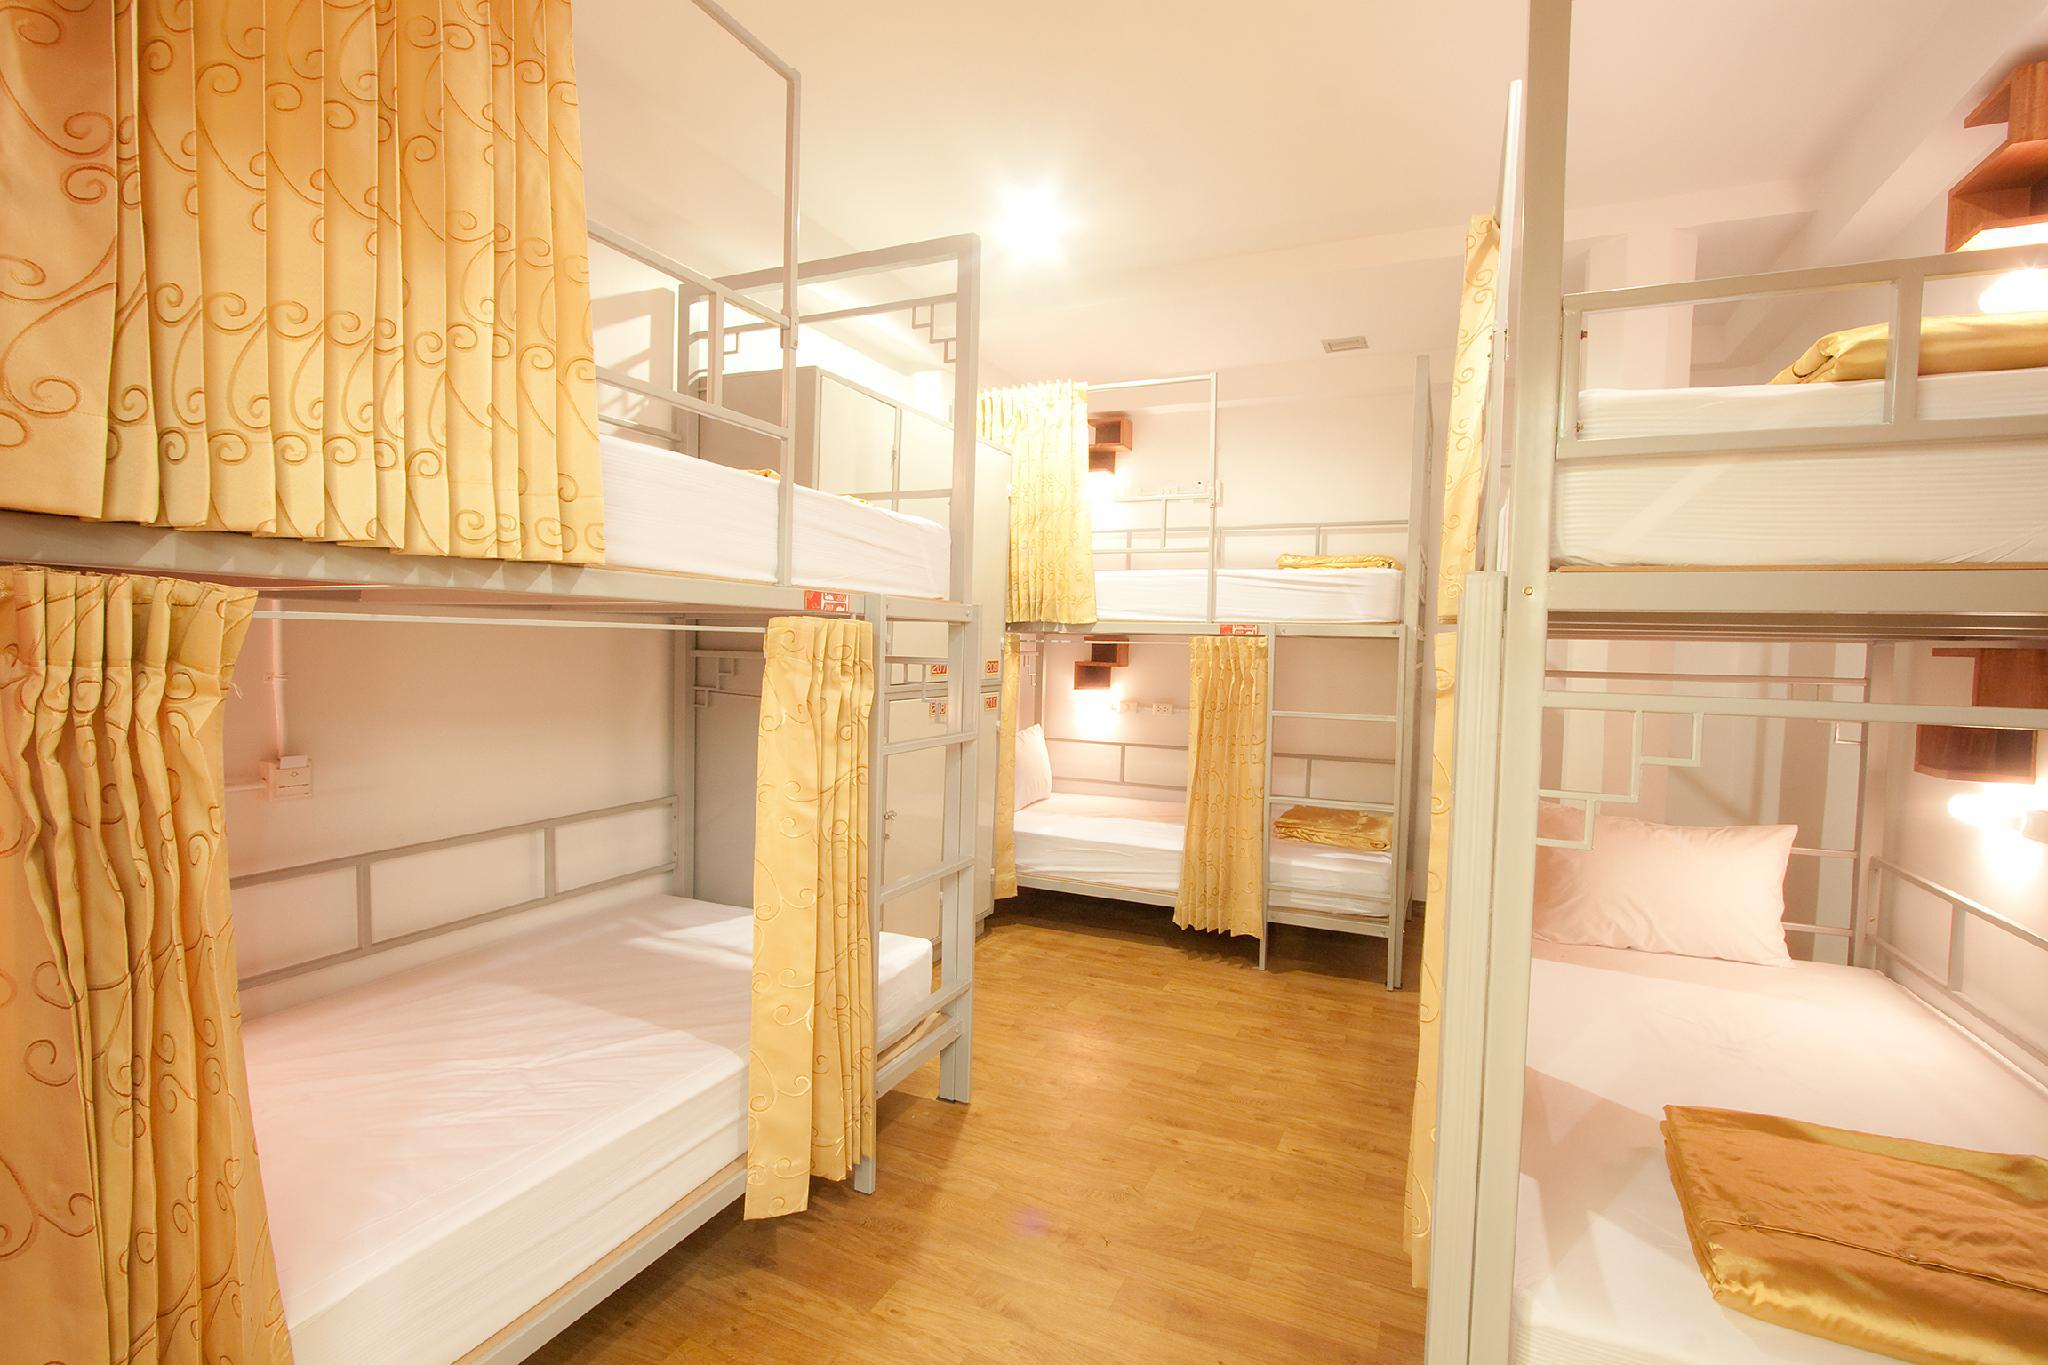 Privékamer voor 6 personen met stapelbed (Private Room for 6 People with Bunk Bed)